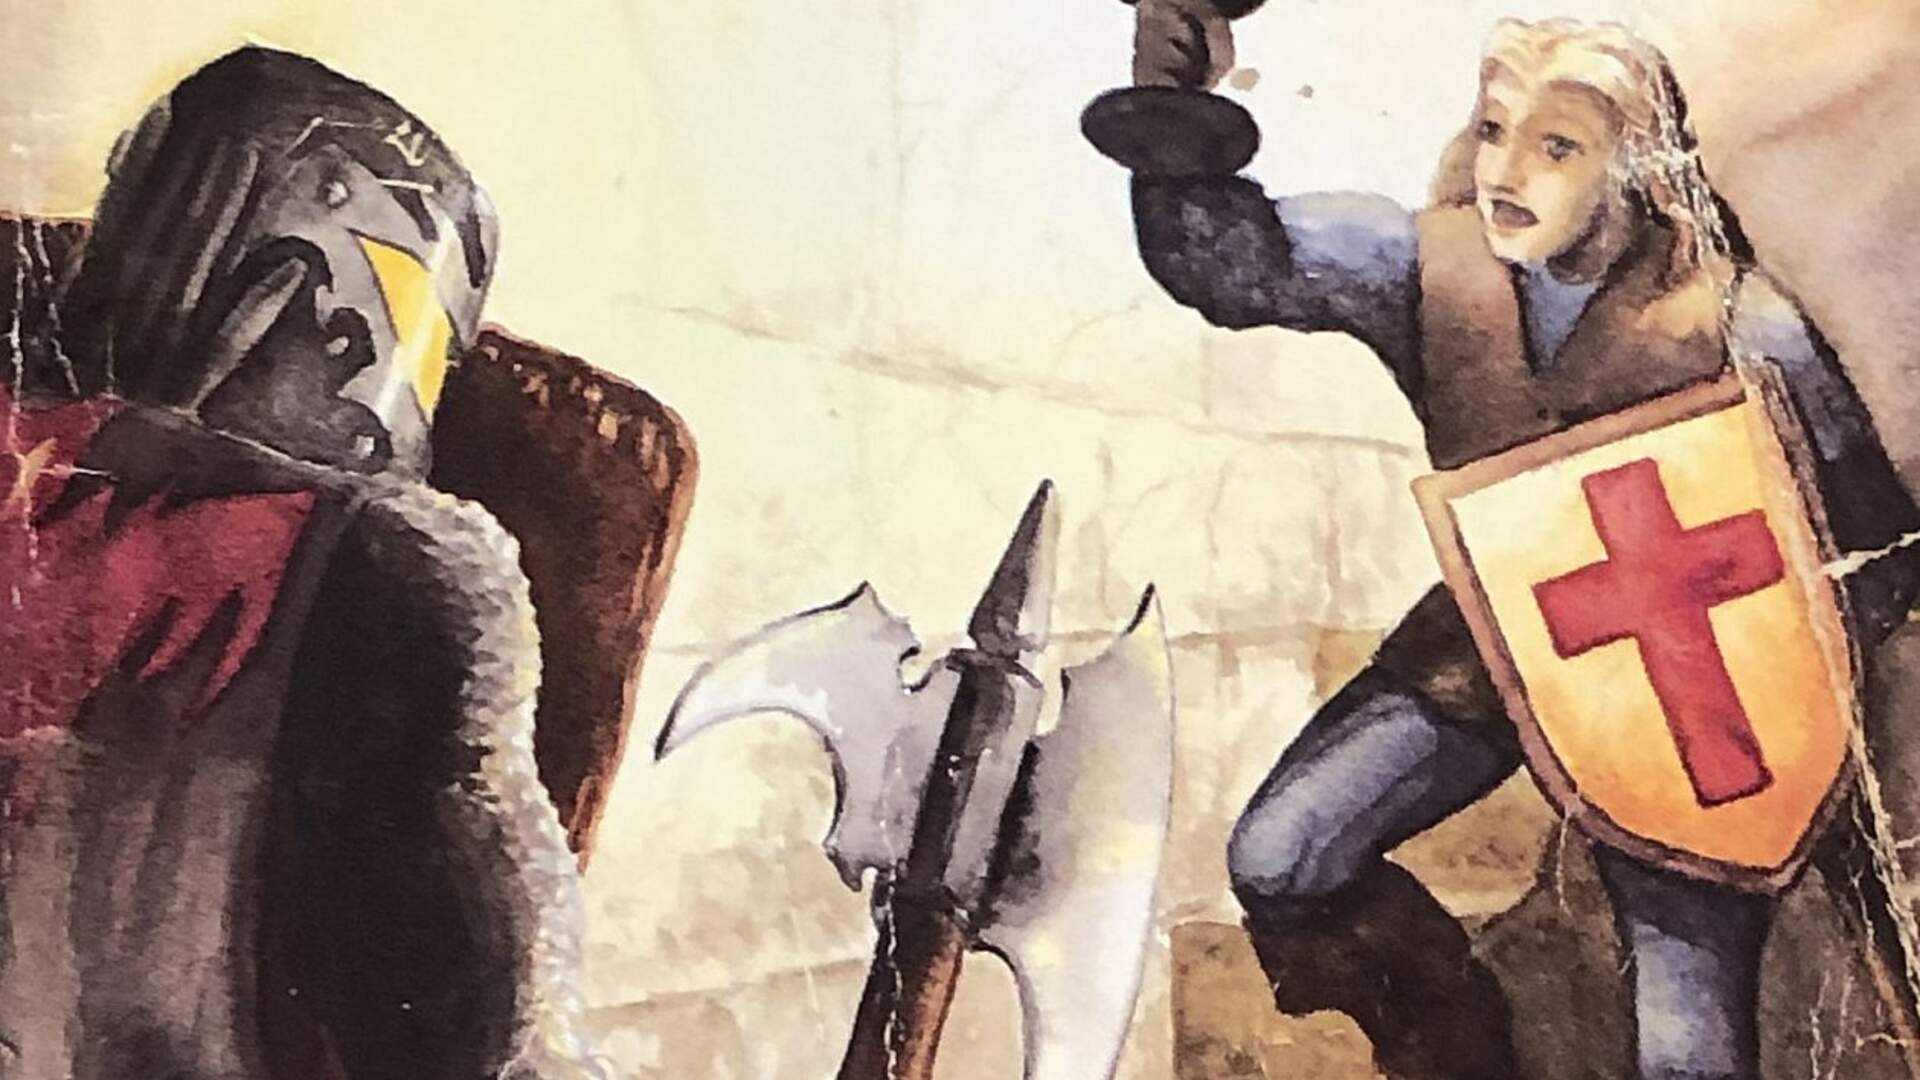 A Salute to the Absurdly Ugly Video Game Guide Cover Art of the Past